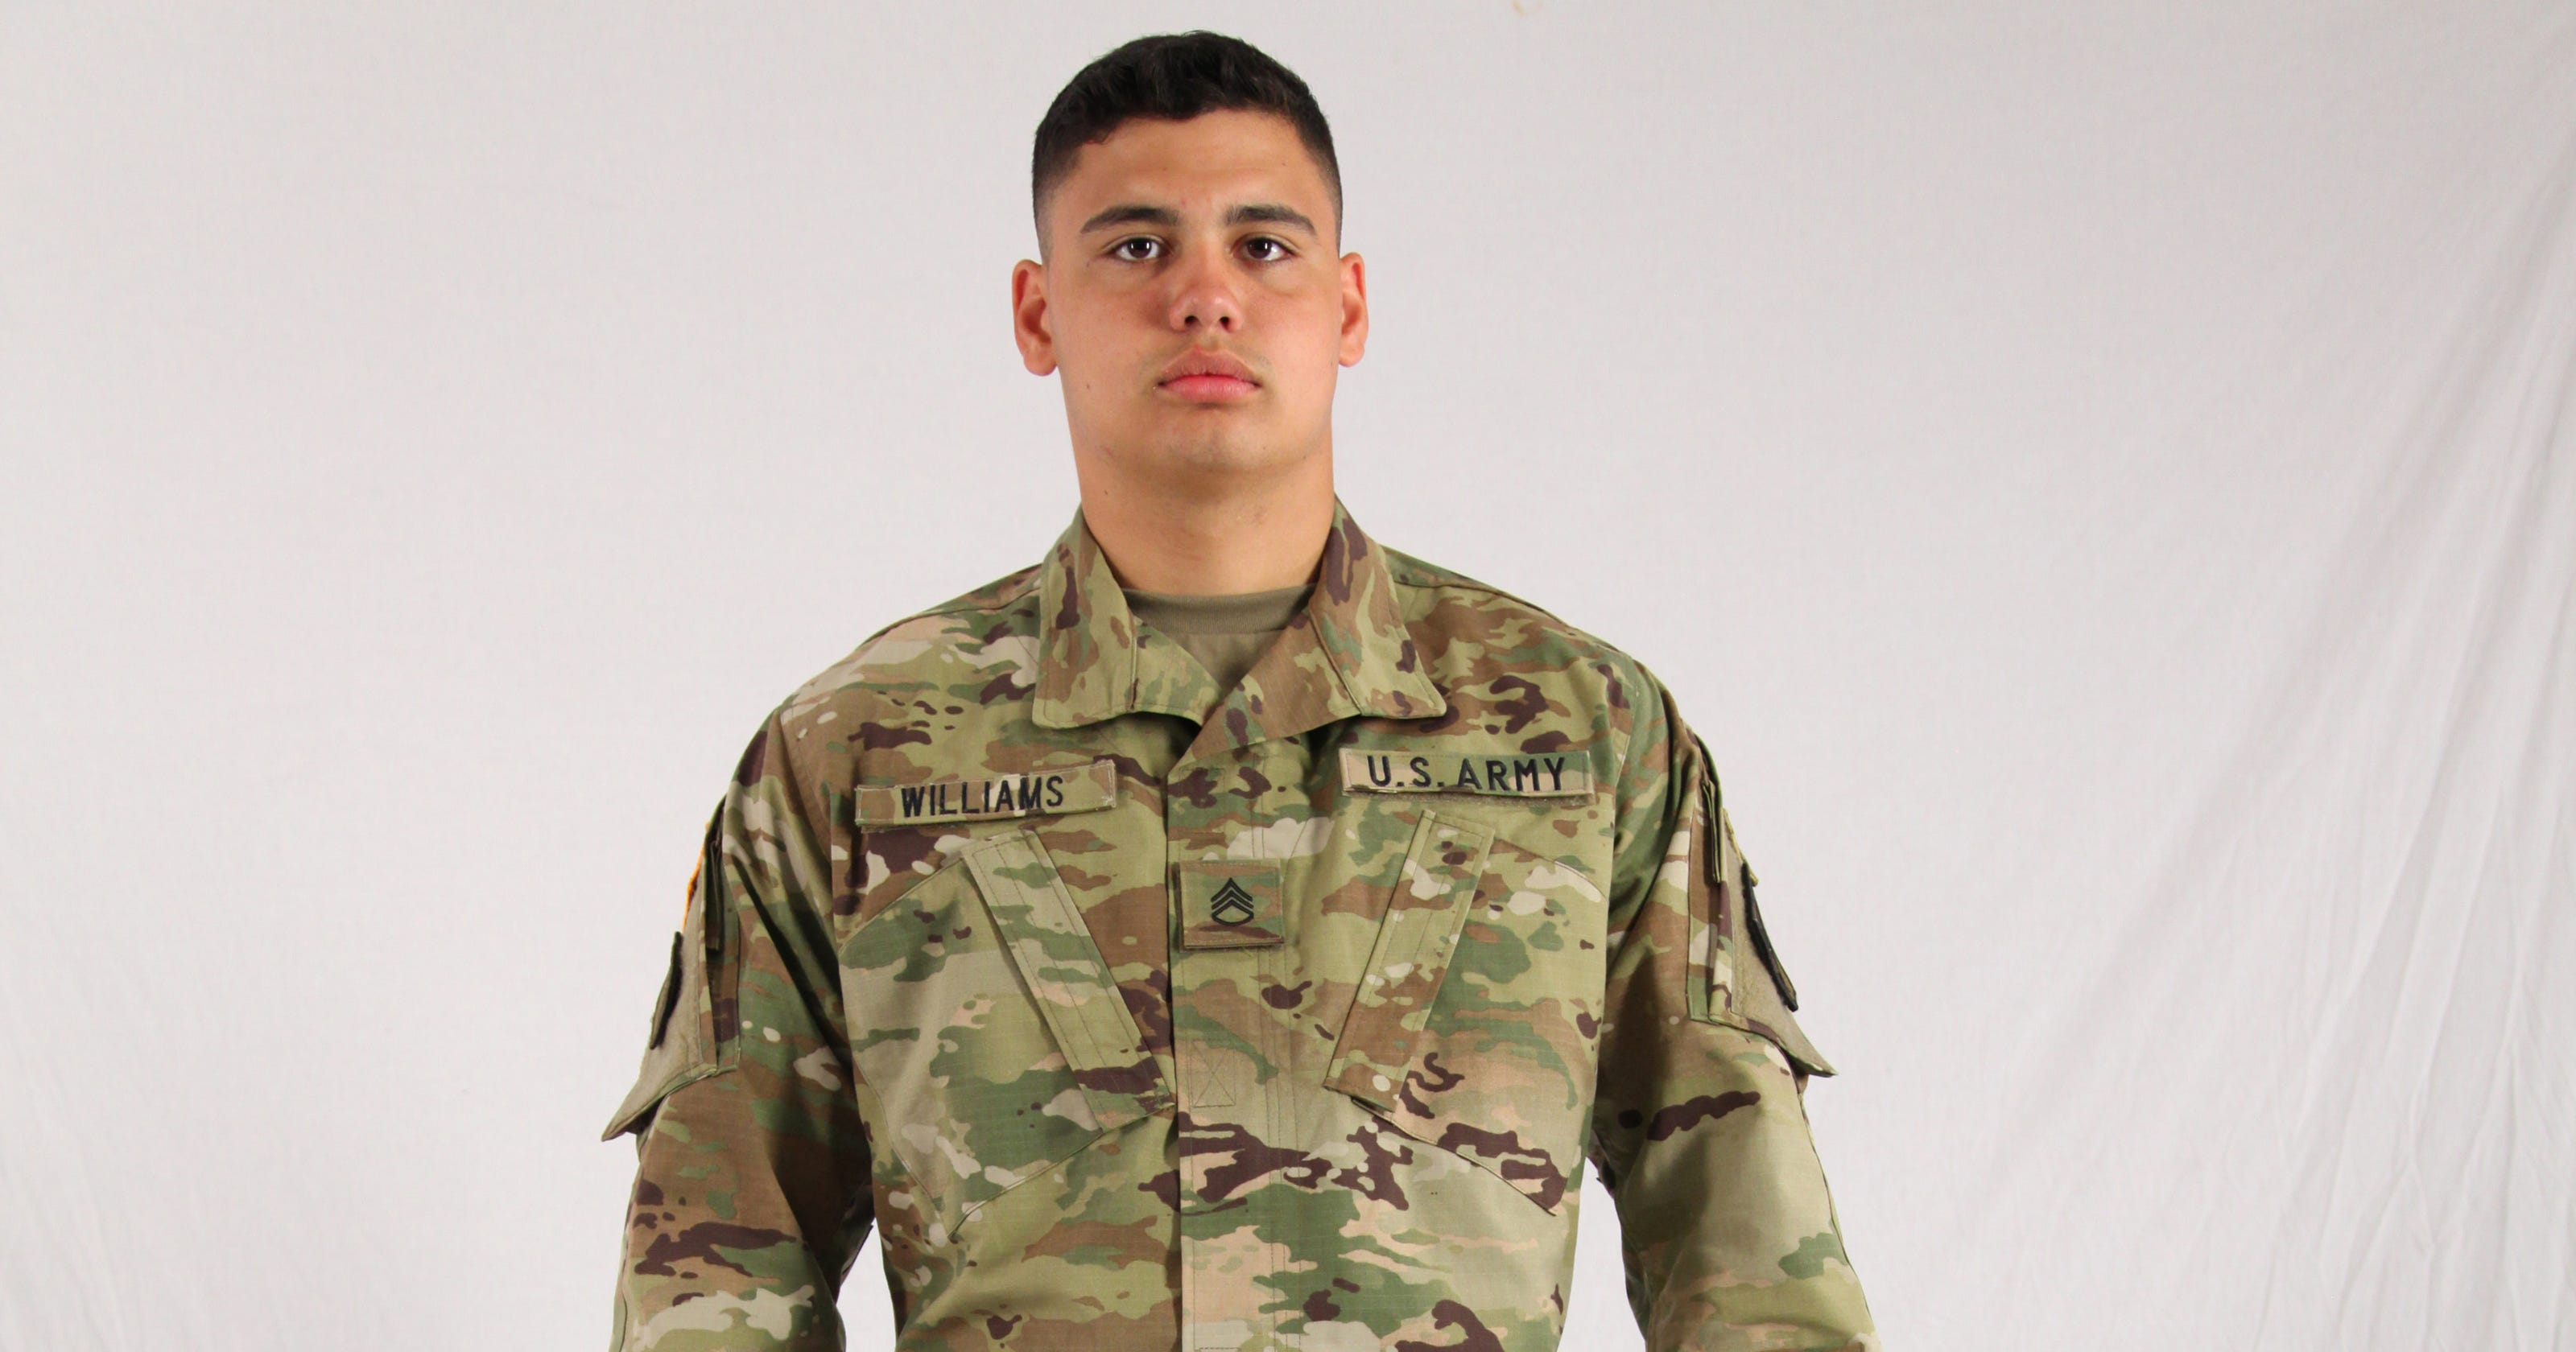 Army's new camouflage uniforms hit stores July 1 - photo#1